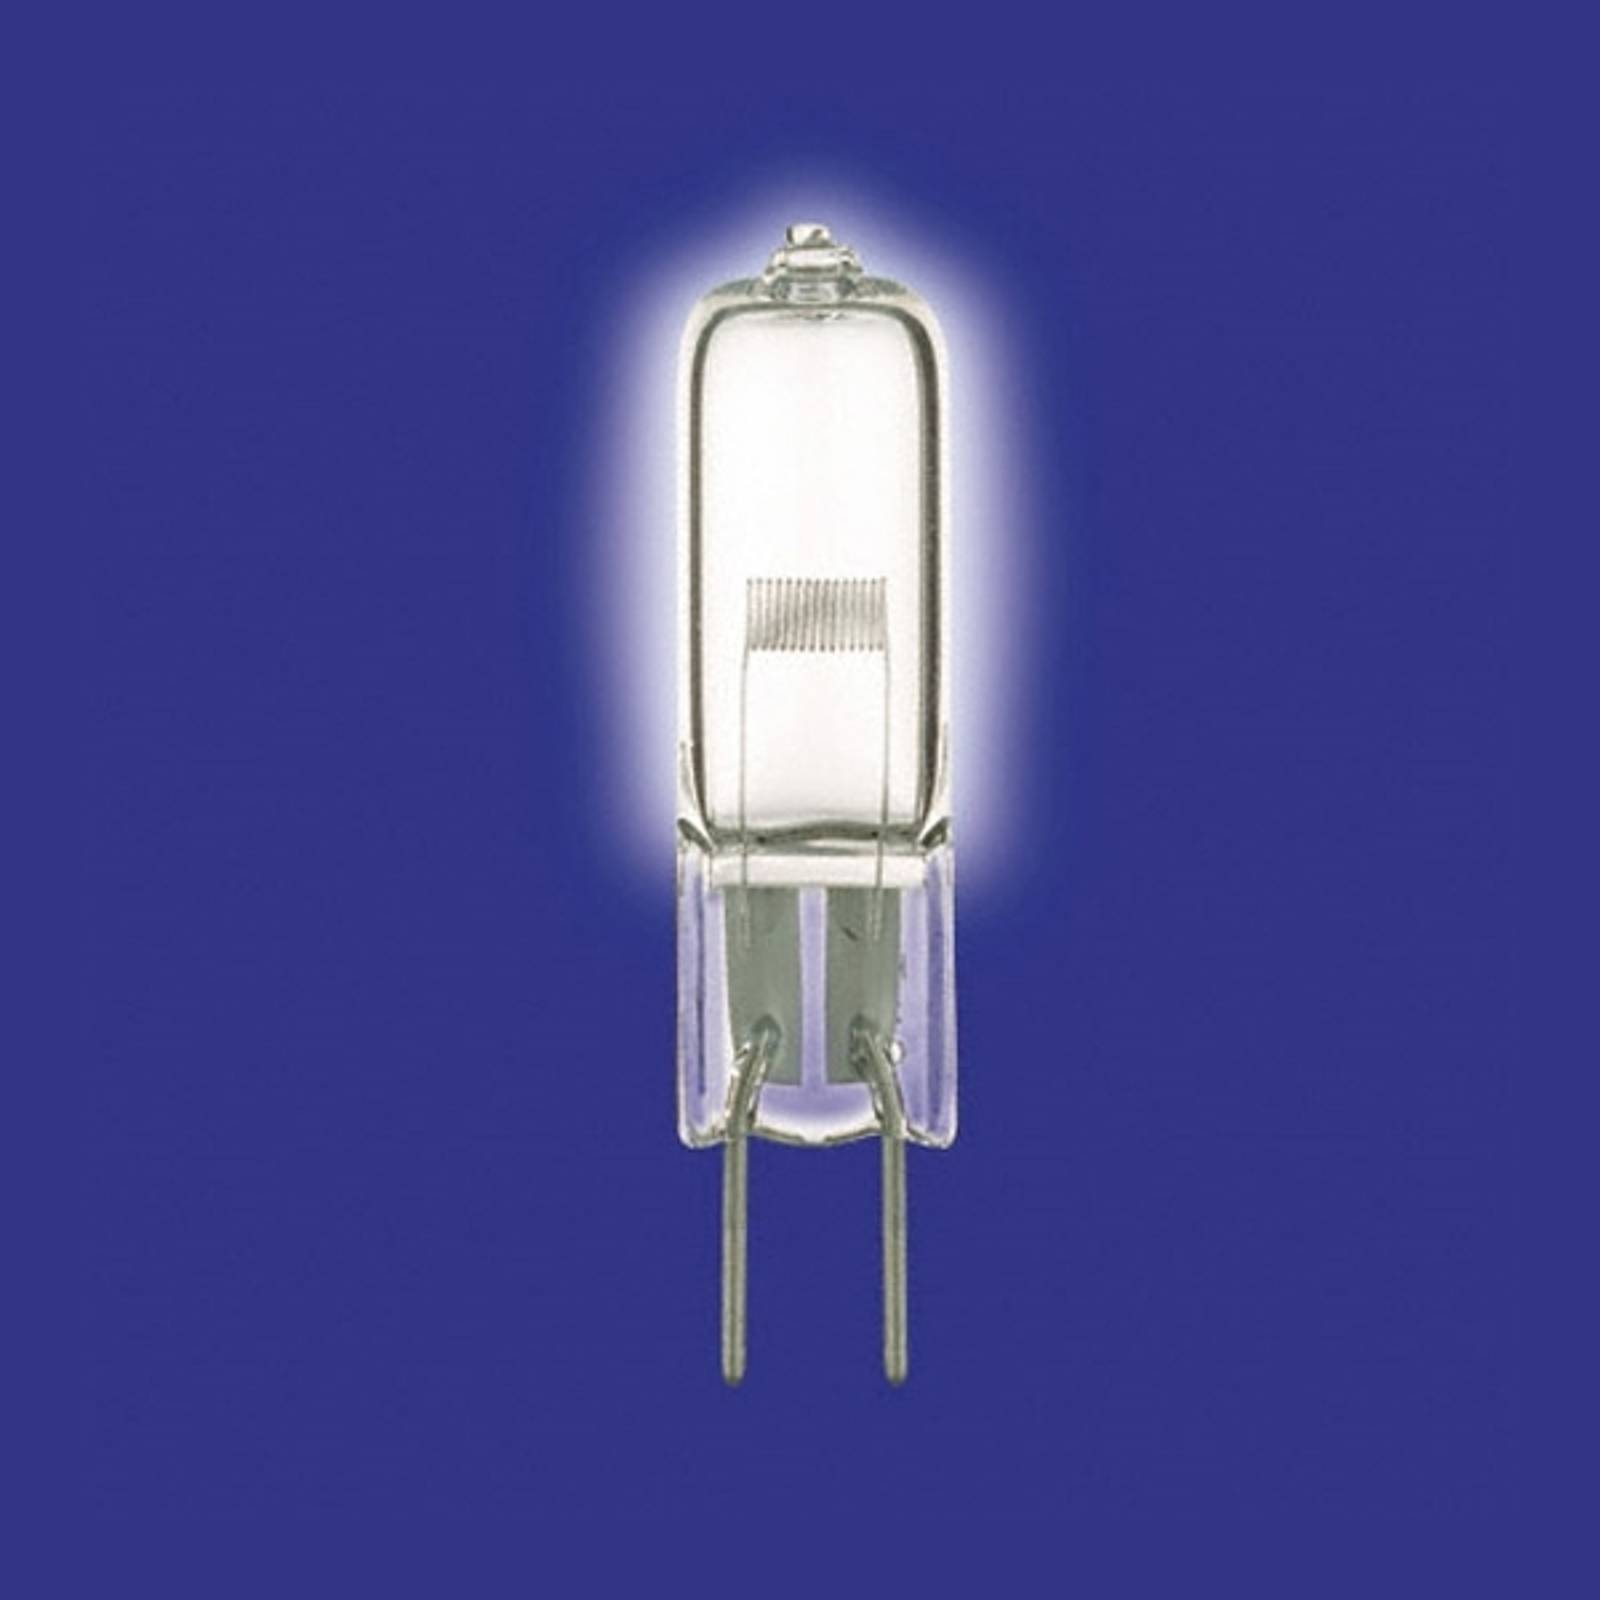 G6.35 150W halogen NV bulb without reflector from Osram